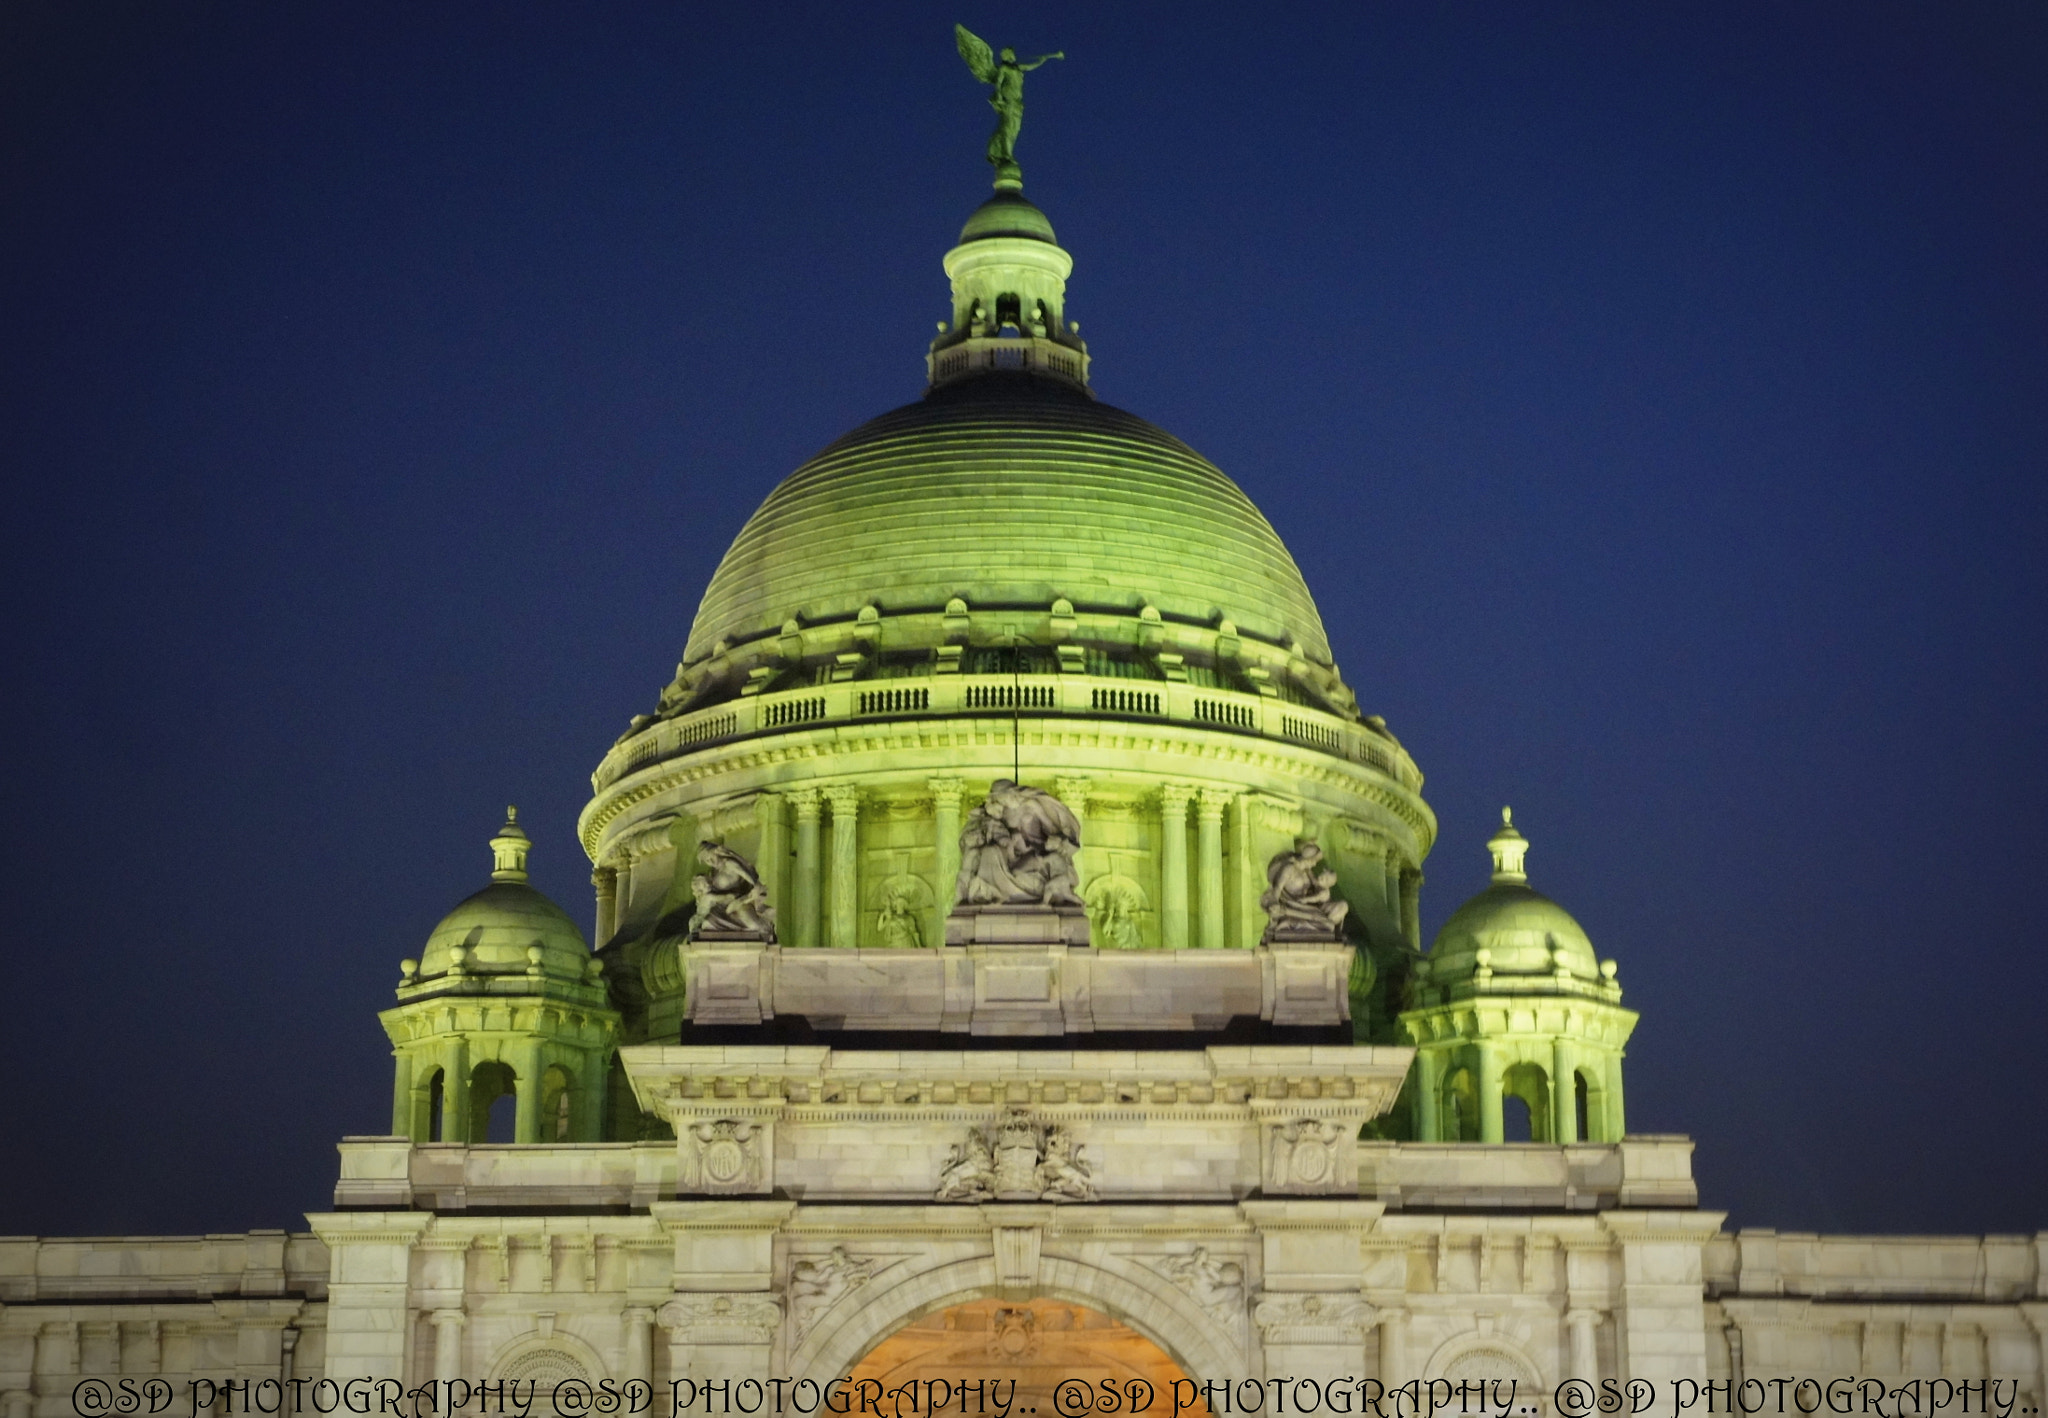 Photograph TOP OF VICTORIA MEMORIAL HALL .. CALCUTTA > INDIA by SUBHA   on 500px